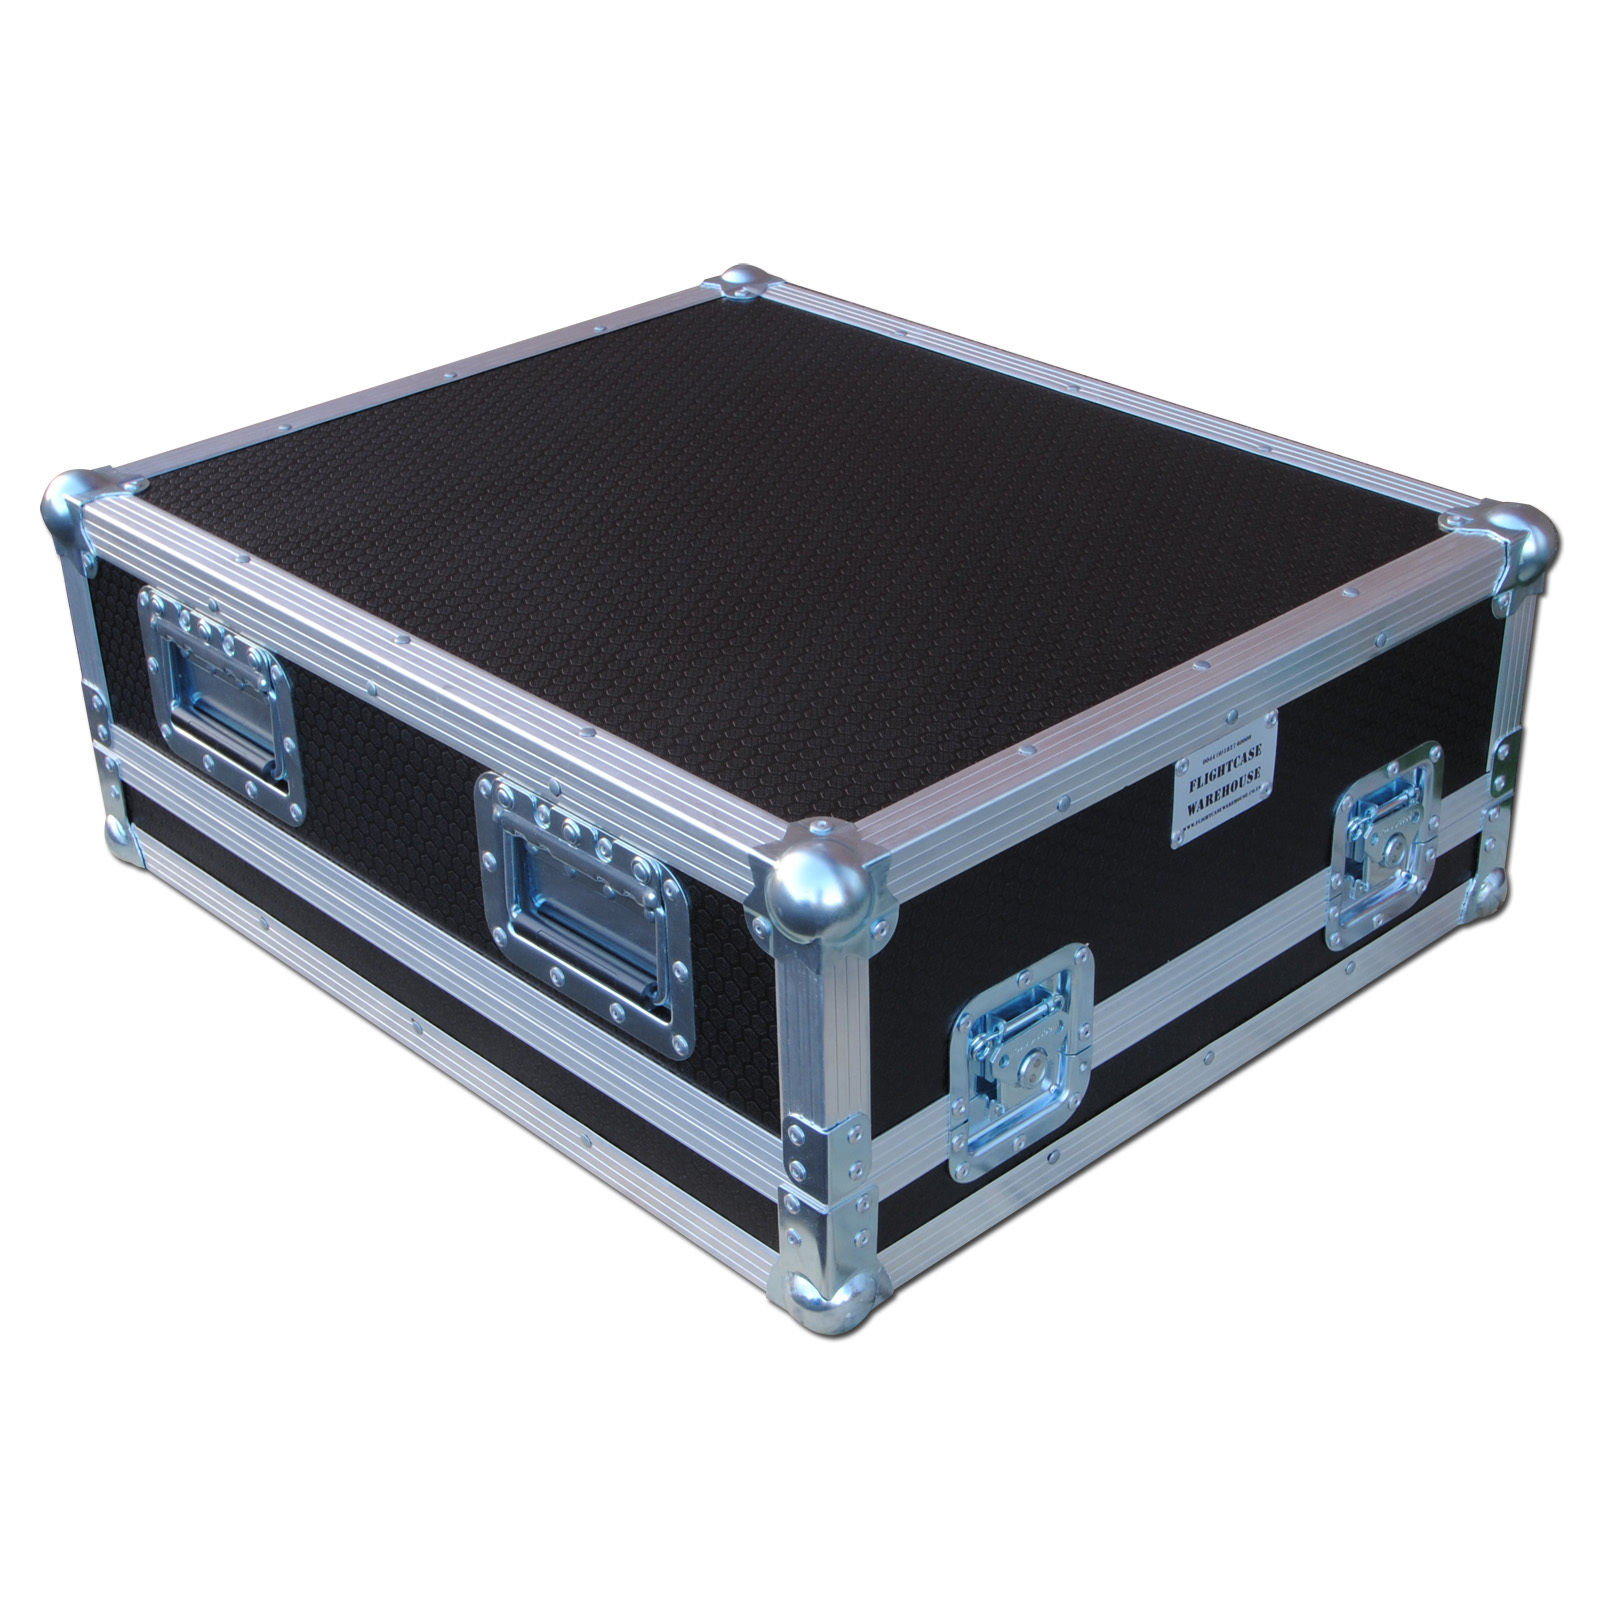 yamaha case Skb music / proav is a manufactures travel and storage cases and racks for musicians, djs, photographers, videographers, and pro audio professionals.